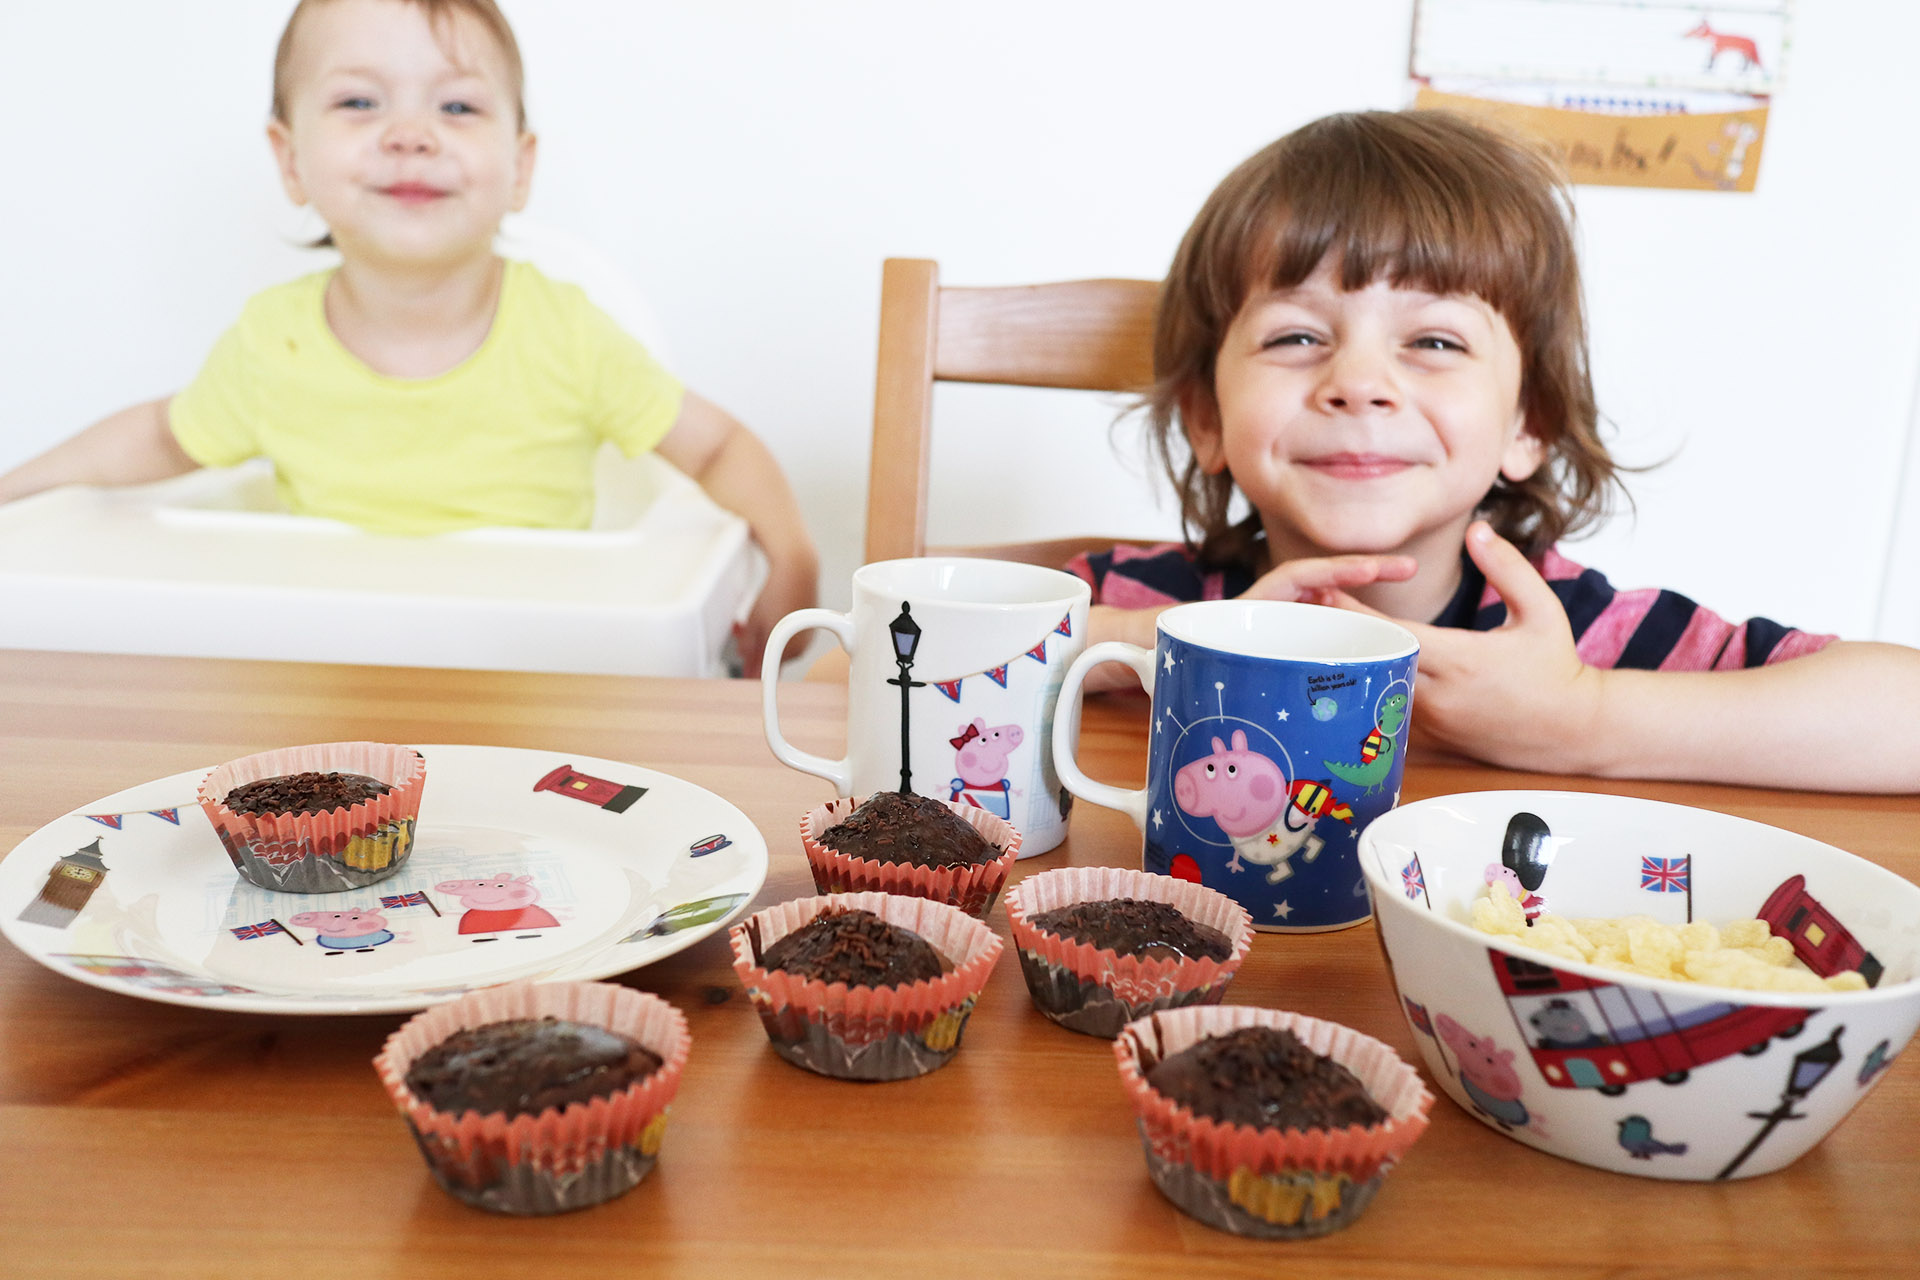 Children smiling after baking chocolate cupcakes